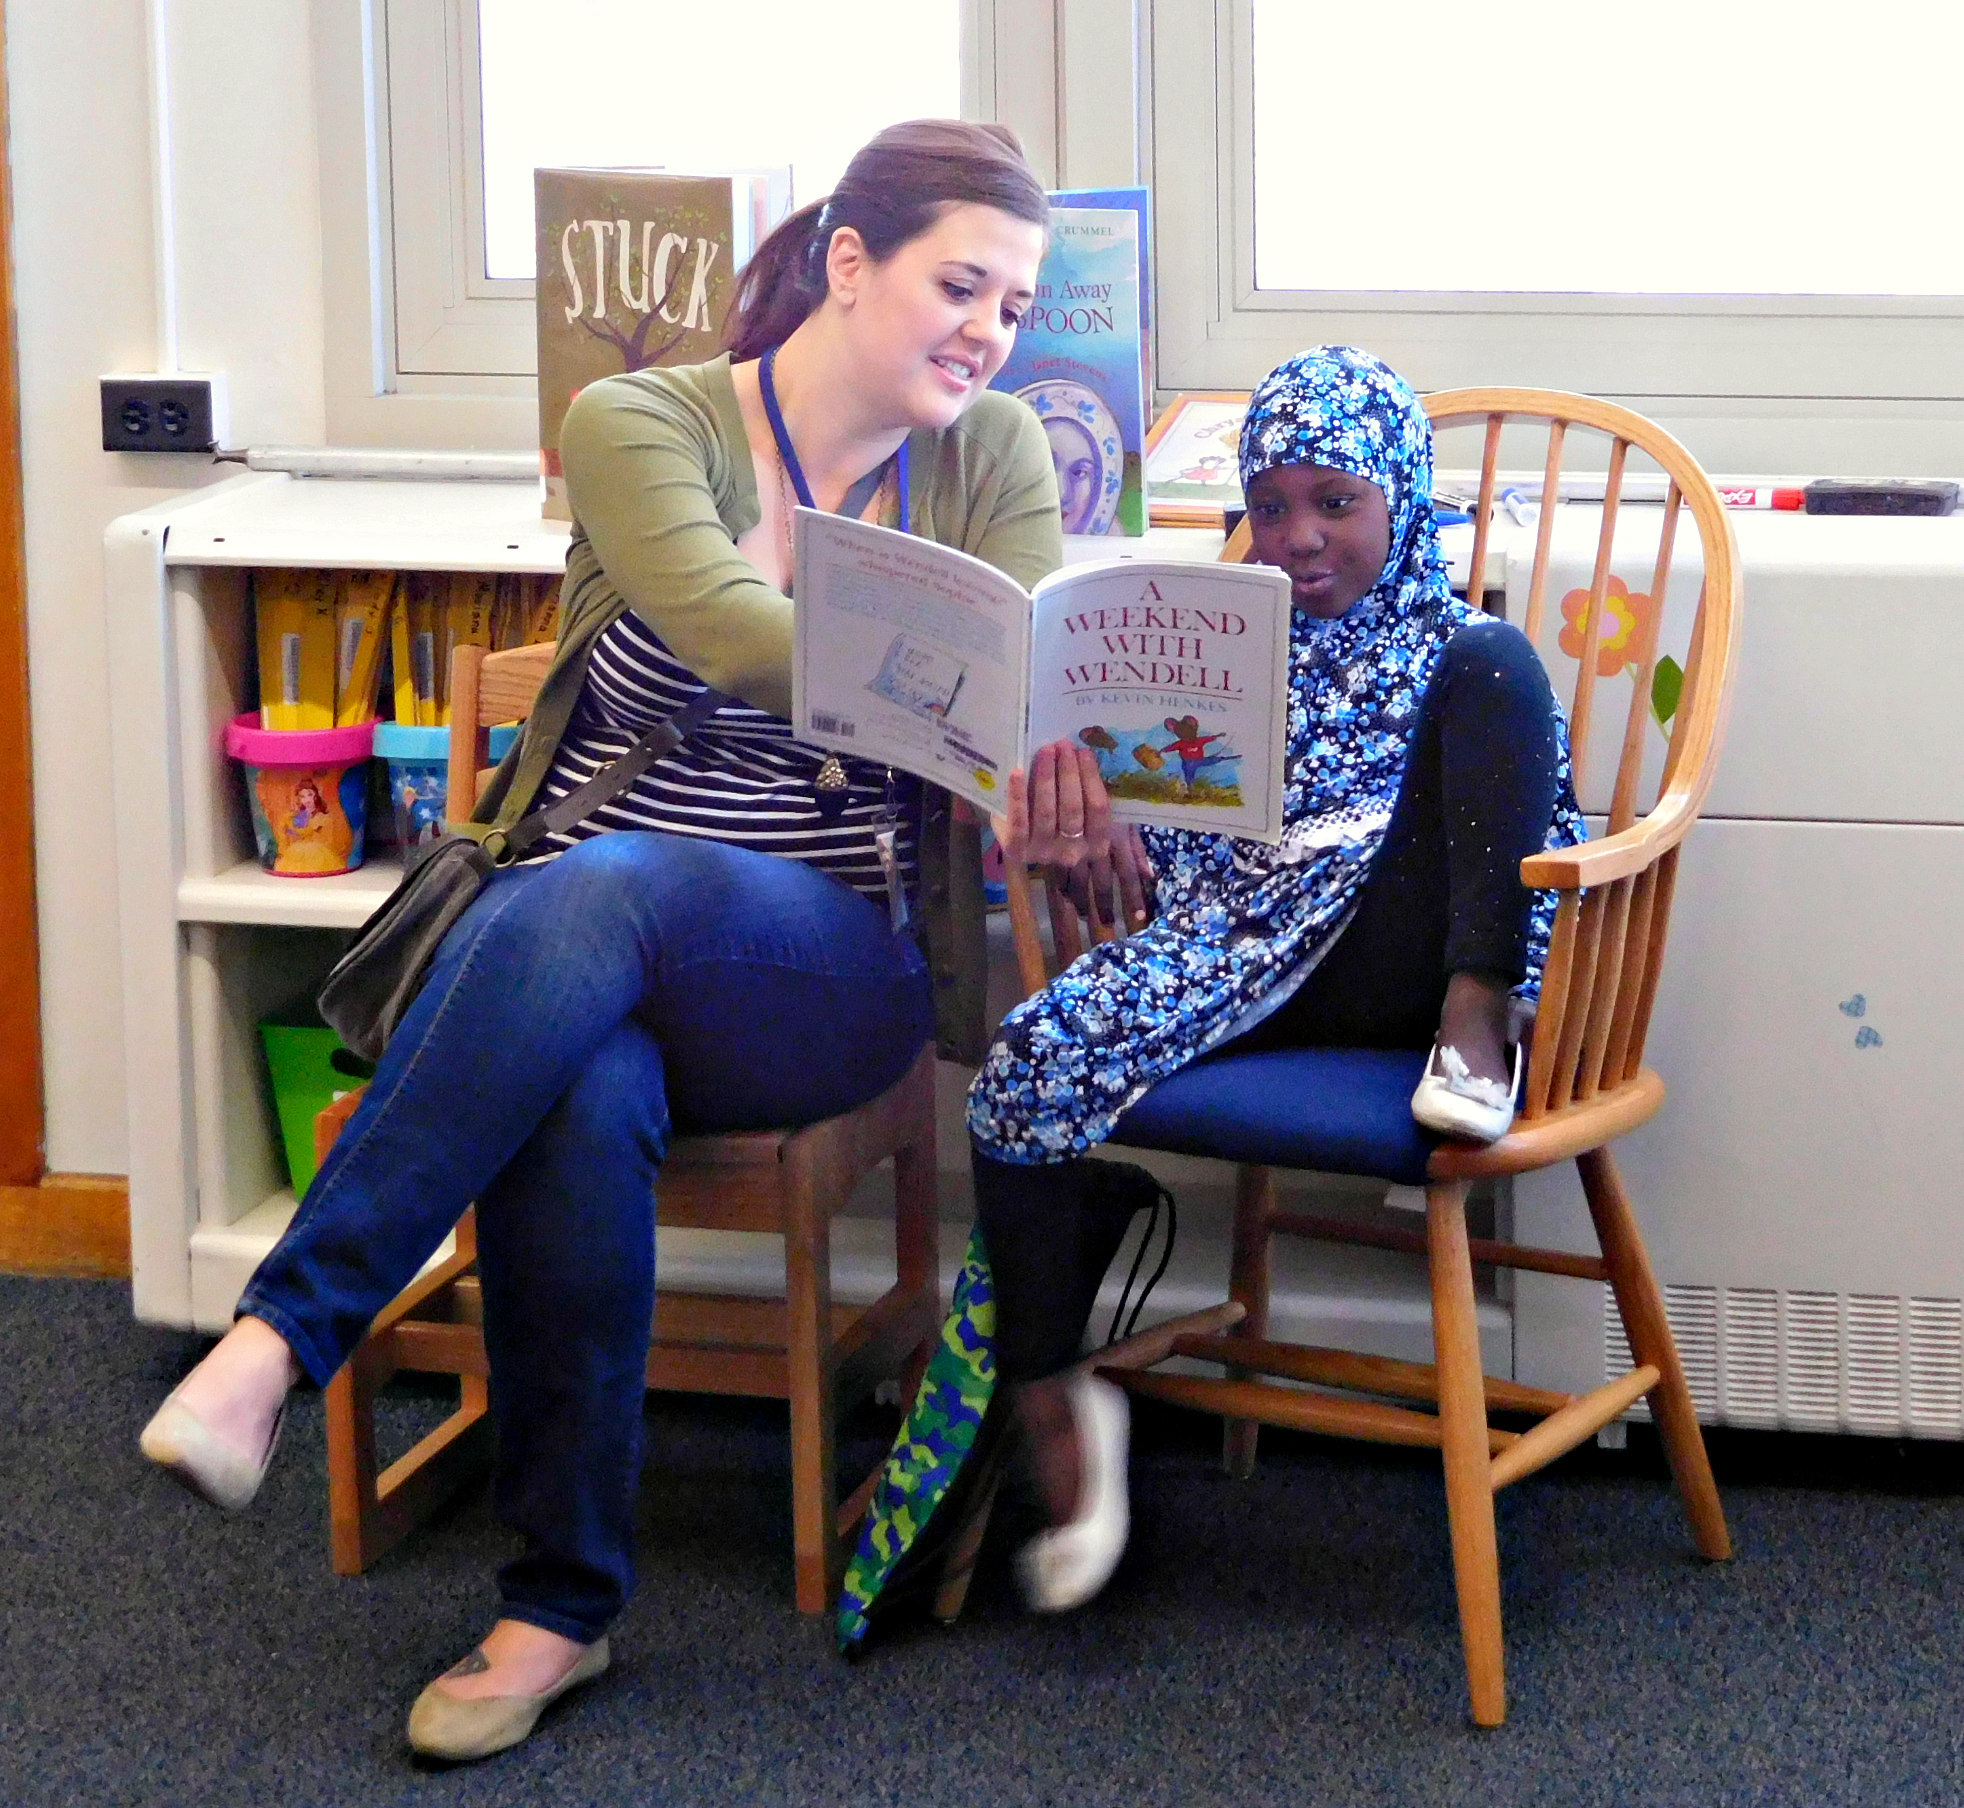 DPS Volunteer reading with student near windows